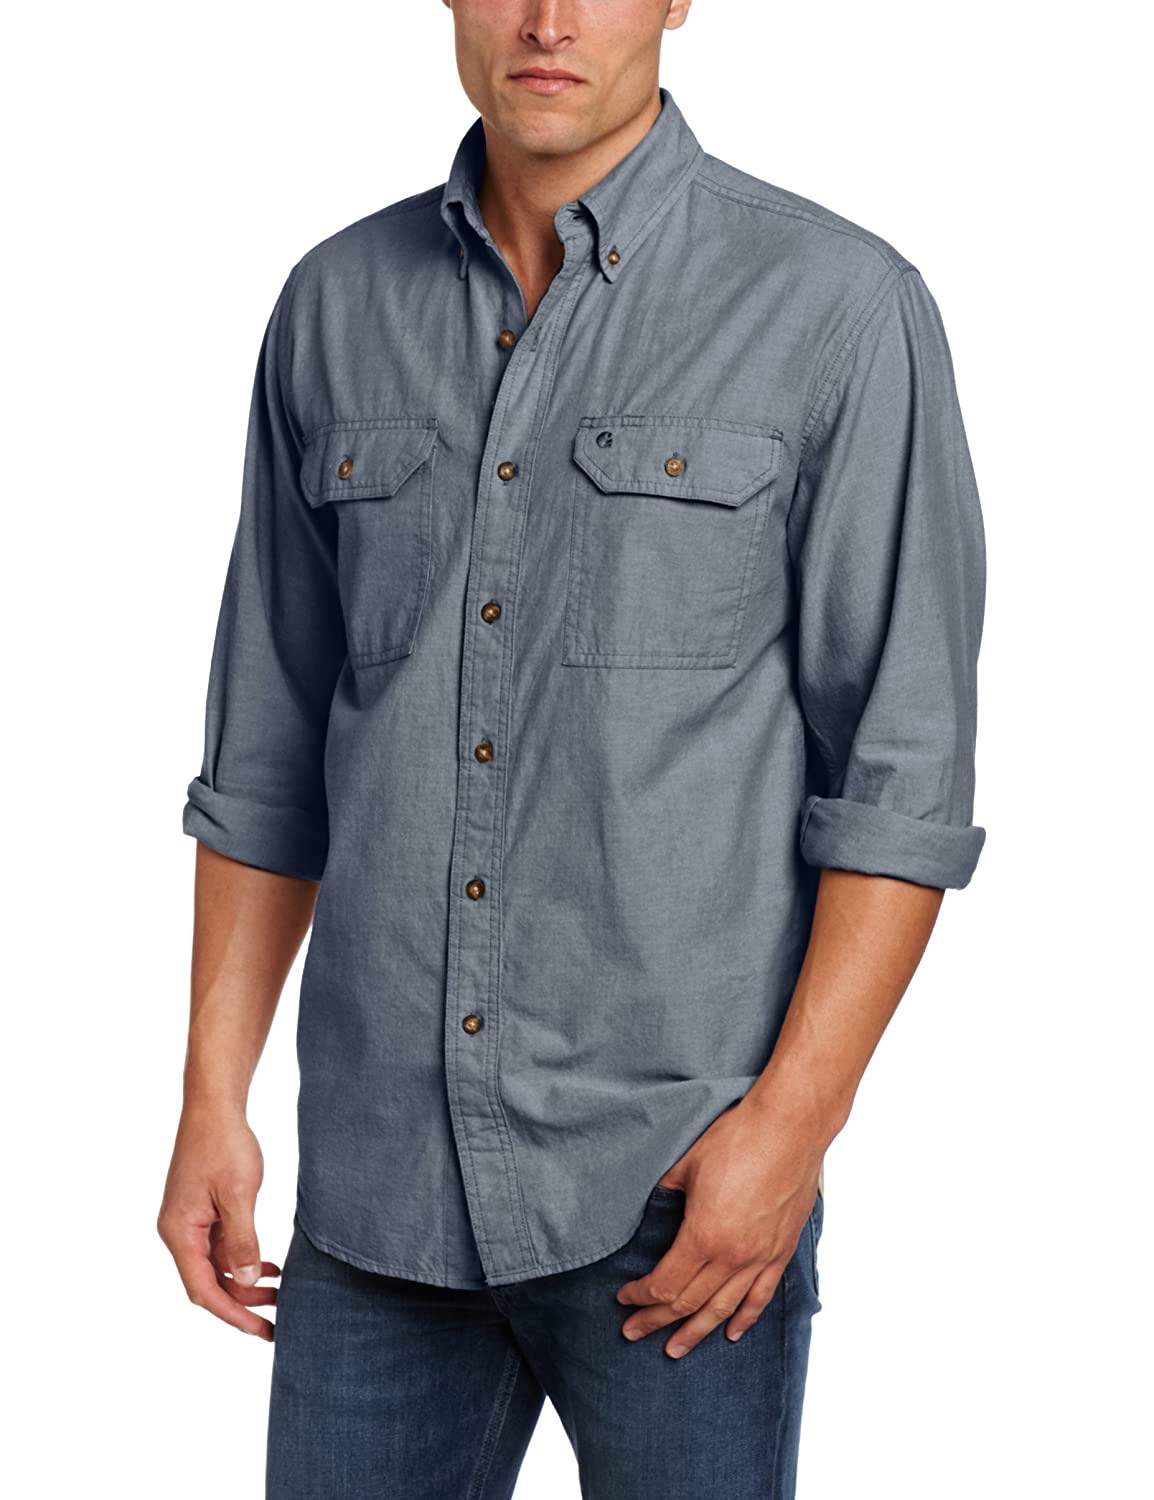 Carhartt mens tall Lw ls chambray shirt- tall Carhartt Sportswear - Mens S202-499